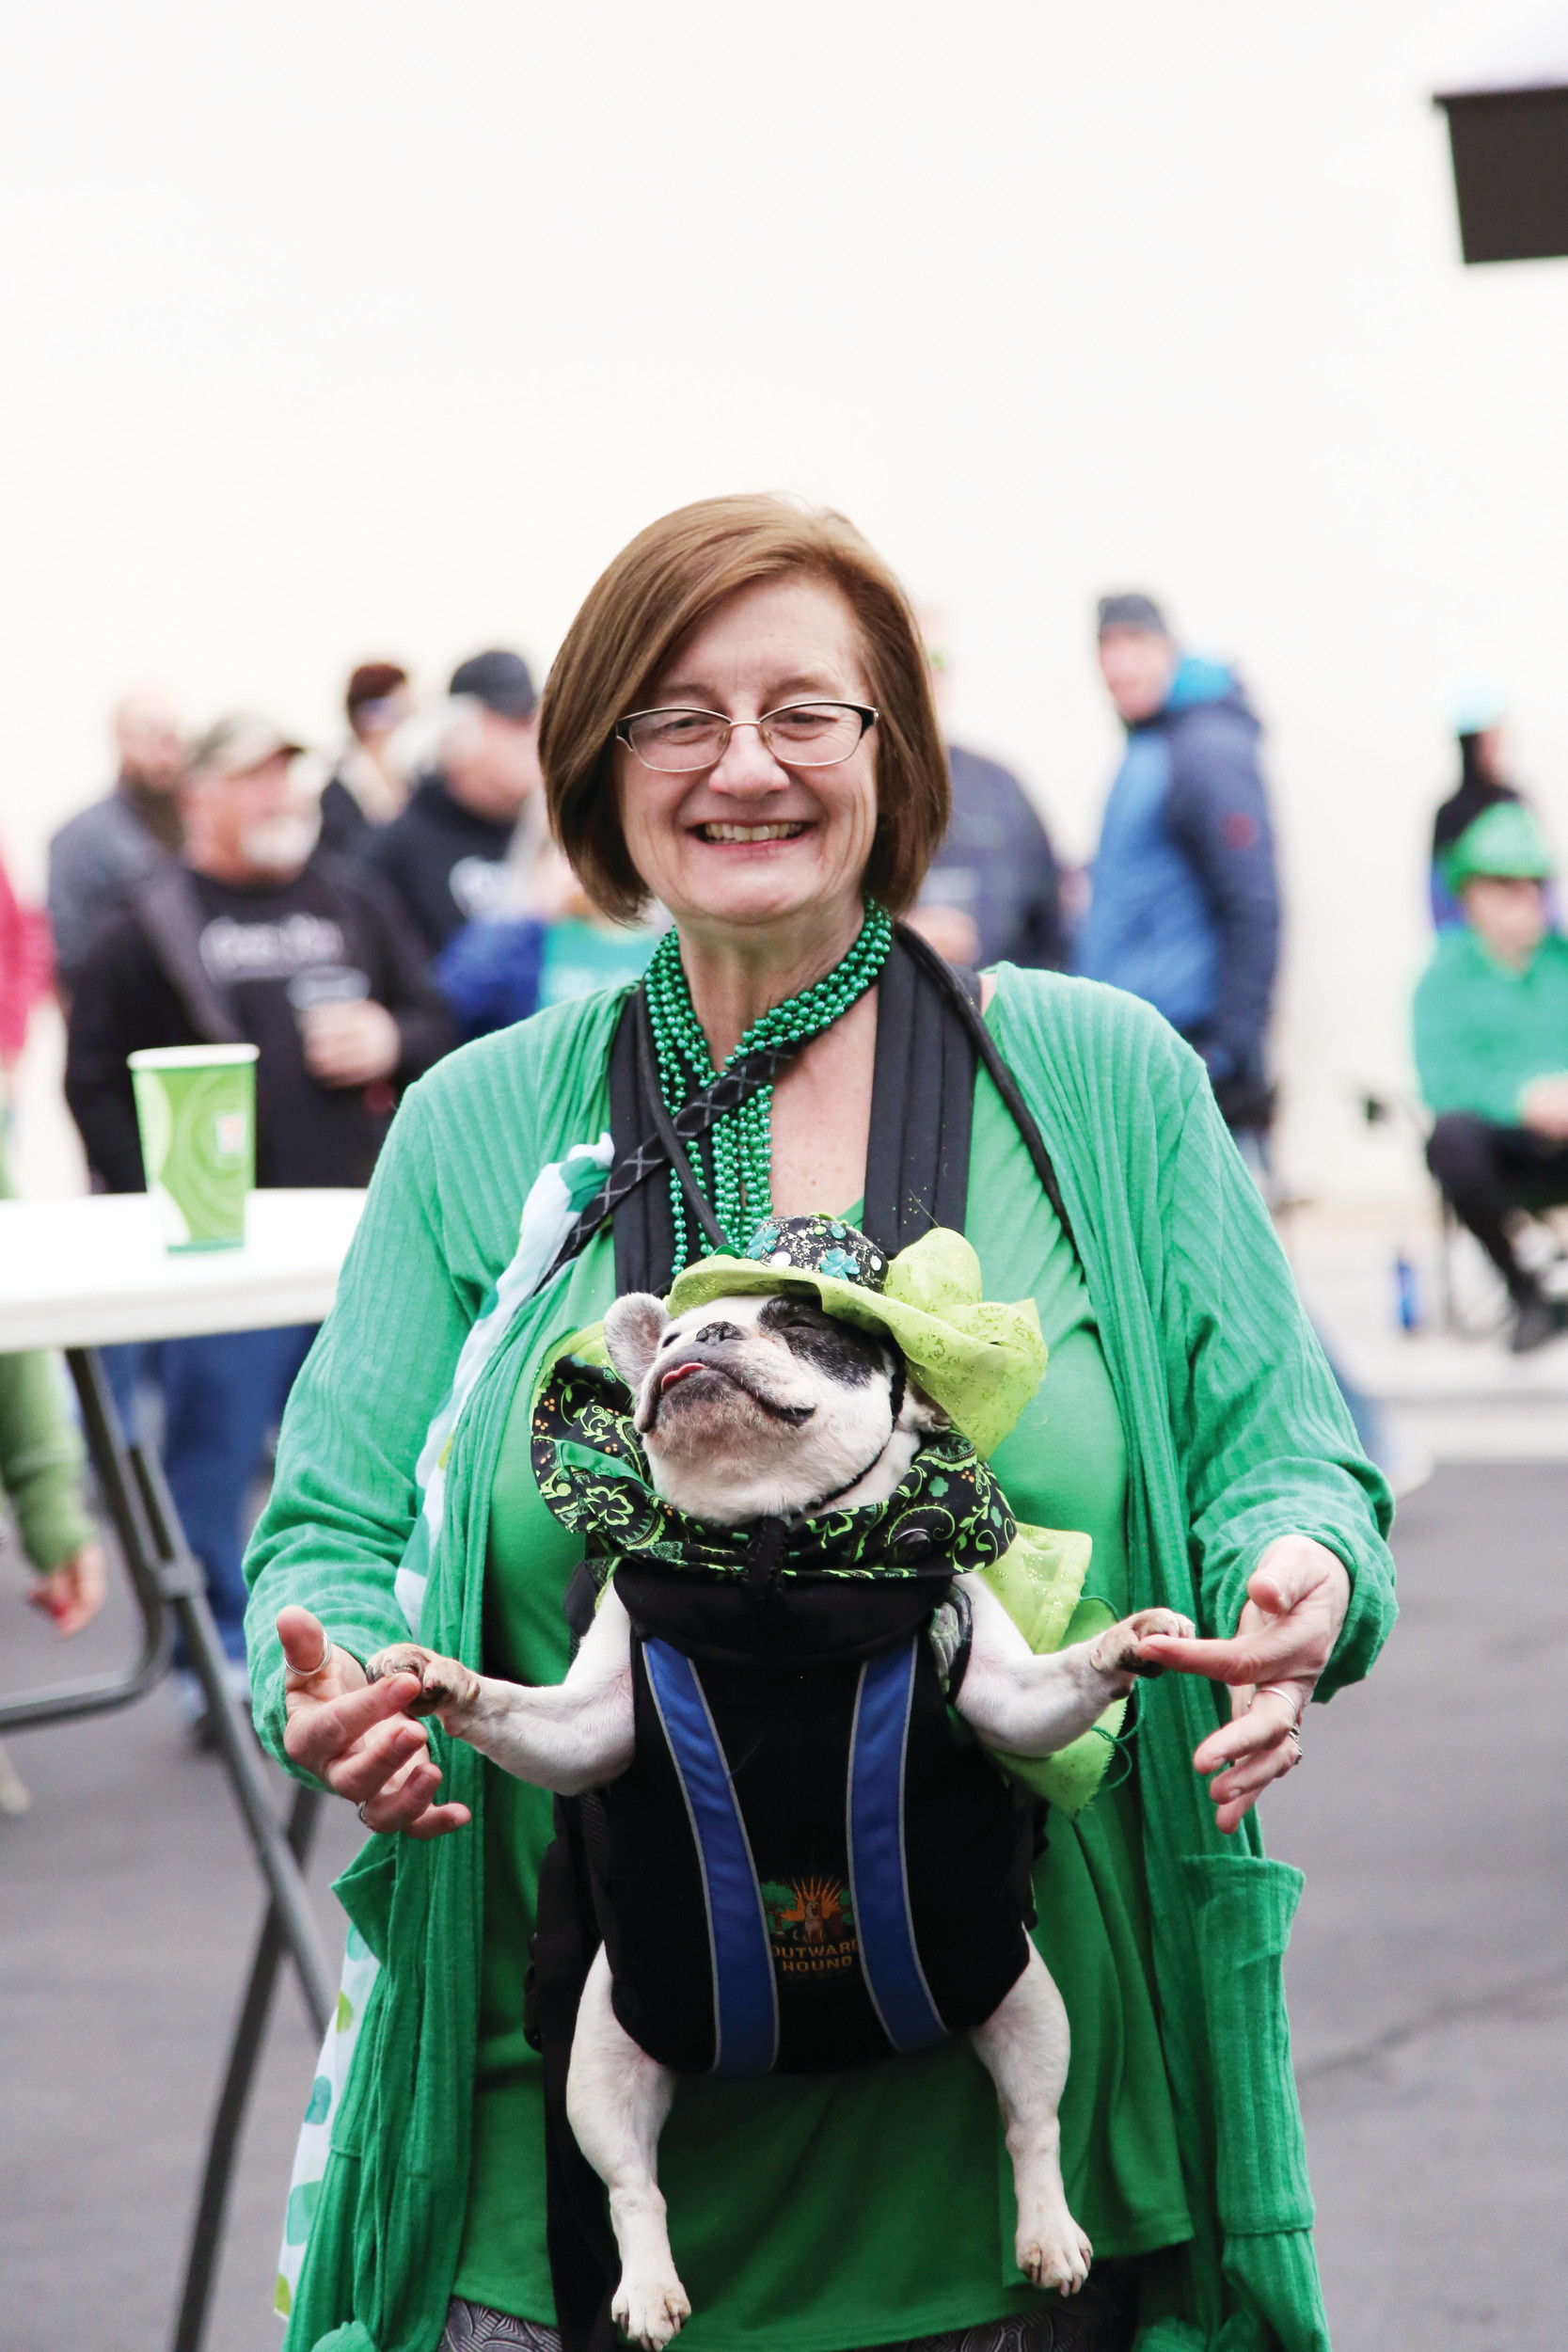 Marleen Pucak and her dog, Beignet, take to the dance floor at the Olde Town Arvada St. Patrick's Day Festival.